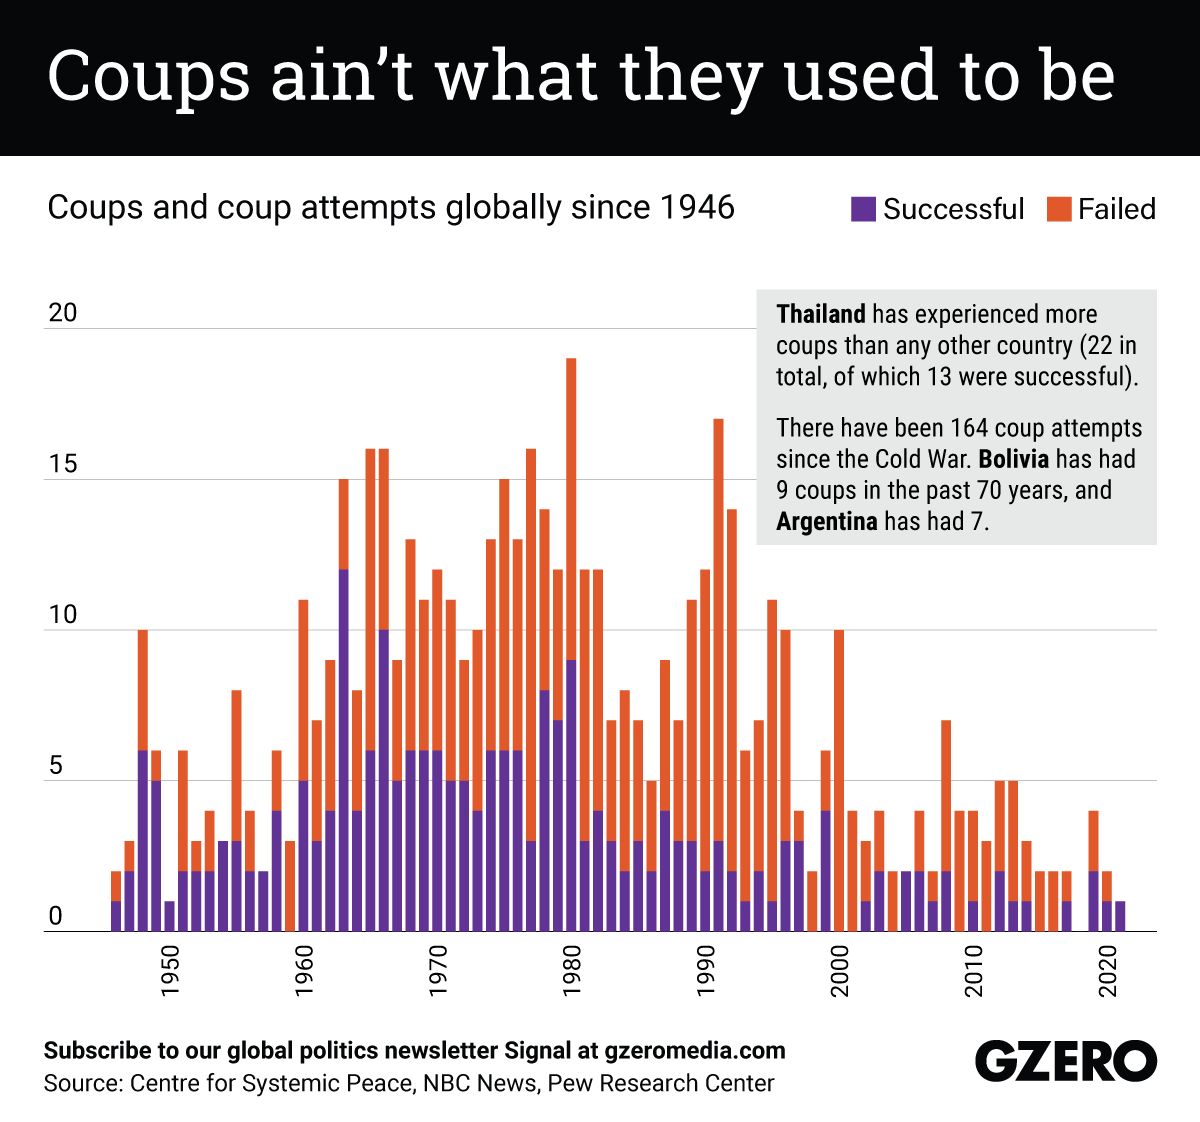 The Graphic Truth: Coups ain't what they used to be